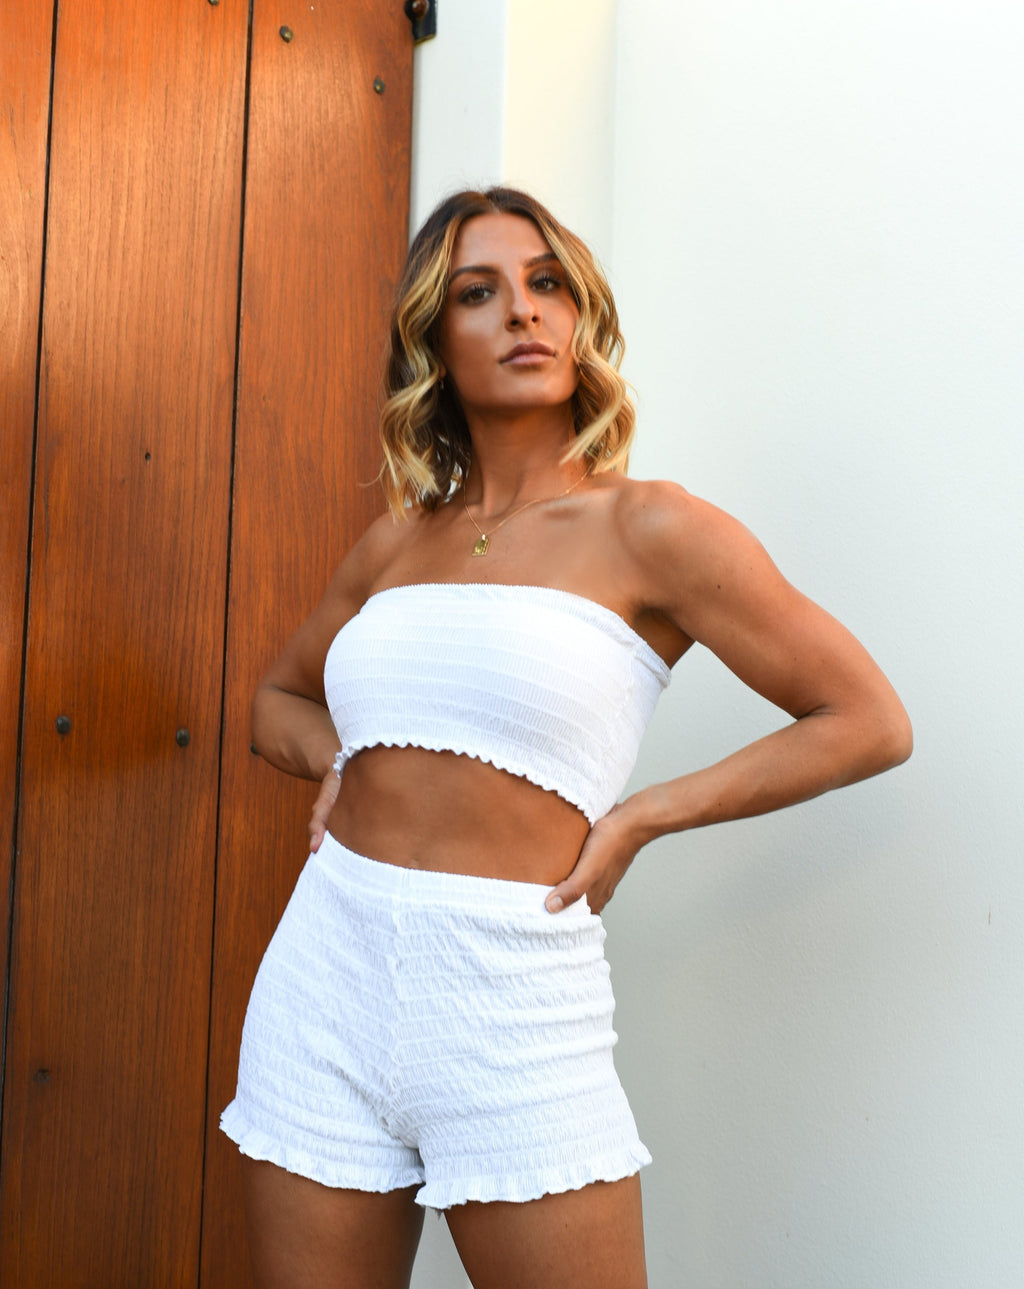 Arianna Shirred Crop Top in White MADE IN AUSTRALIA